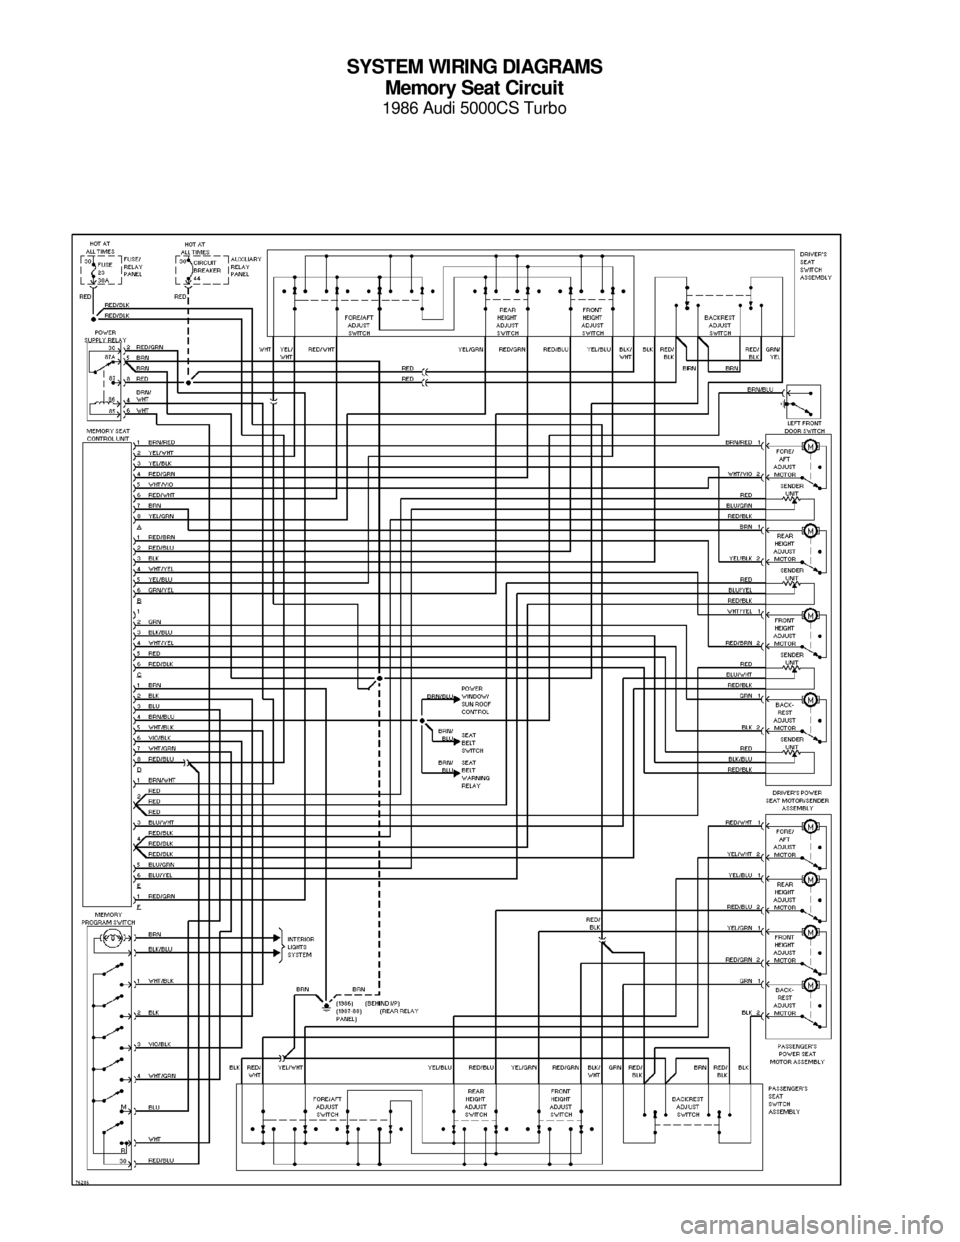 Audi A3 8p Wiring Diagram Circuit And Hub 1986 Fiat Uno Turbo Electrical System 25 Images Q5 2016 Pdf